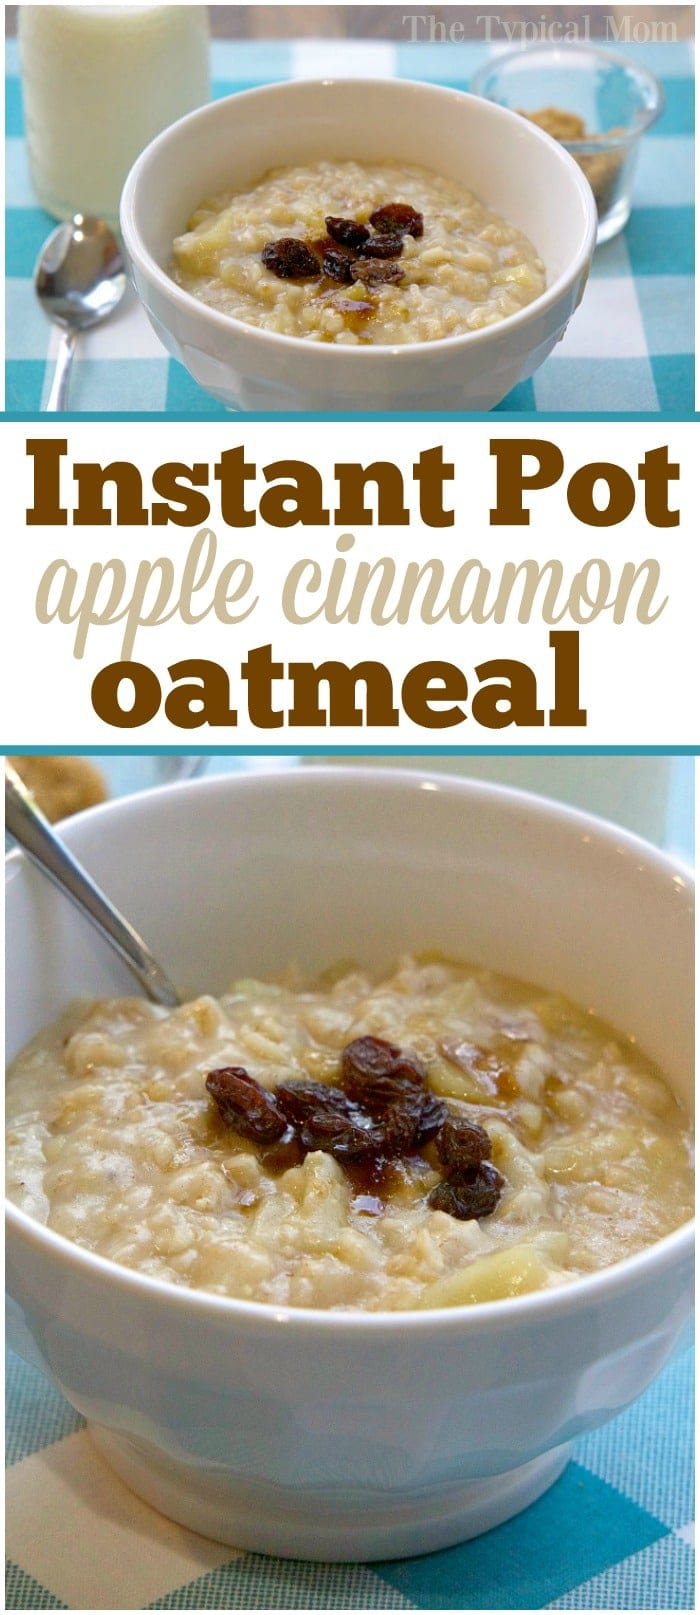 This apple cinnamon Instant Pot oatmeal recipe only takes 5 minutes to cook and tastes amazing! An easy pressure cooker breakfast that the whole family will enjoy and is a healthy meal too. Creamy and packed with flavor and fruit inside you'll surely add this to your weekly menu. My kid's favorite. #instantpot #oatmeal #easy #recipe #apple #breakfast #cinnamon #healthy #pressurecooker